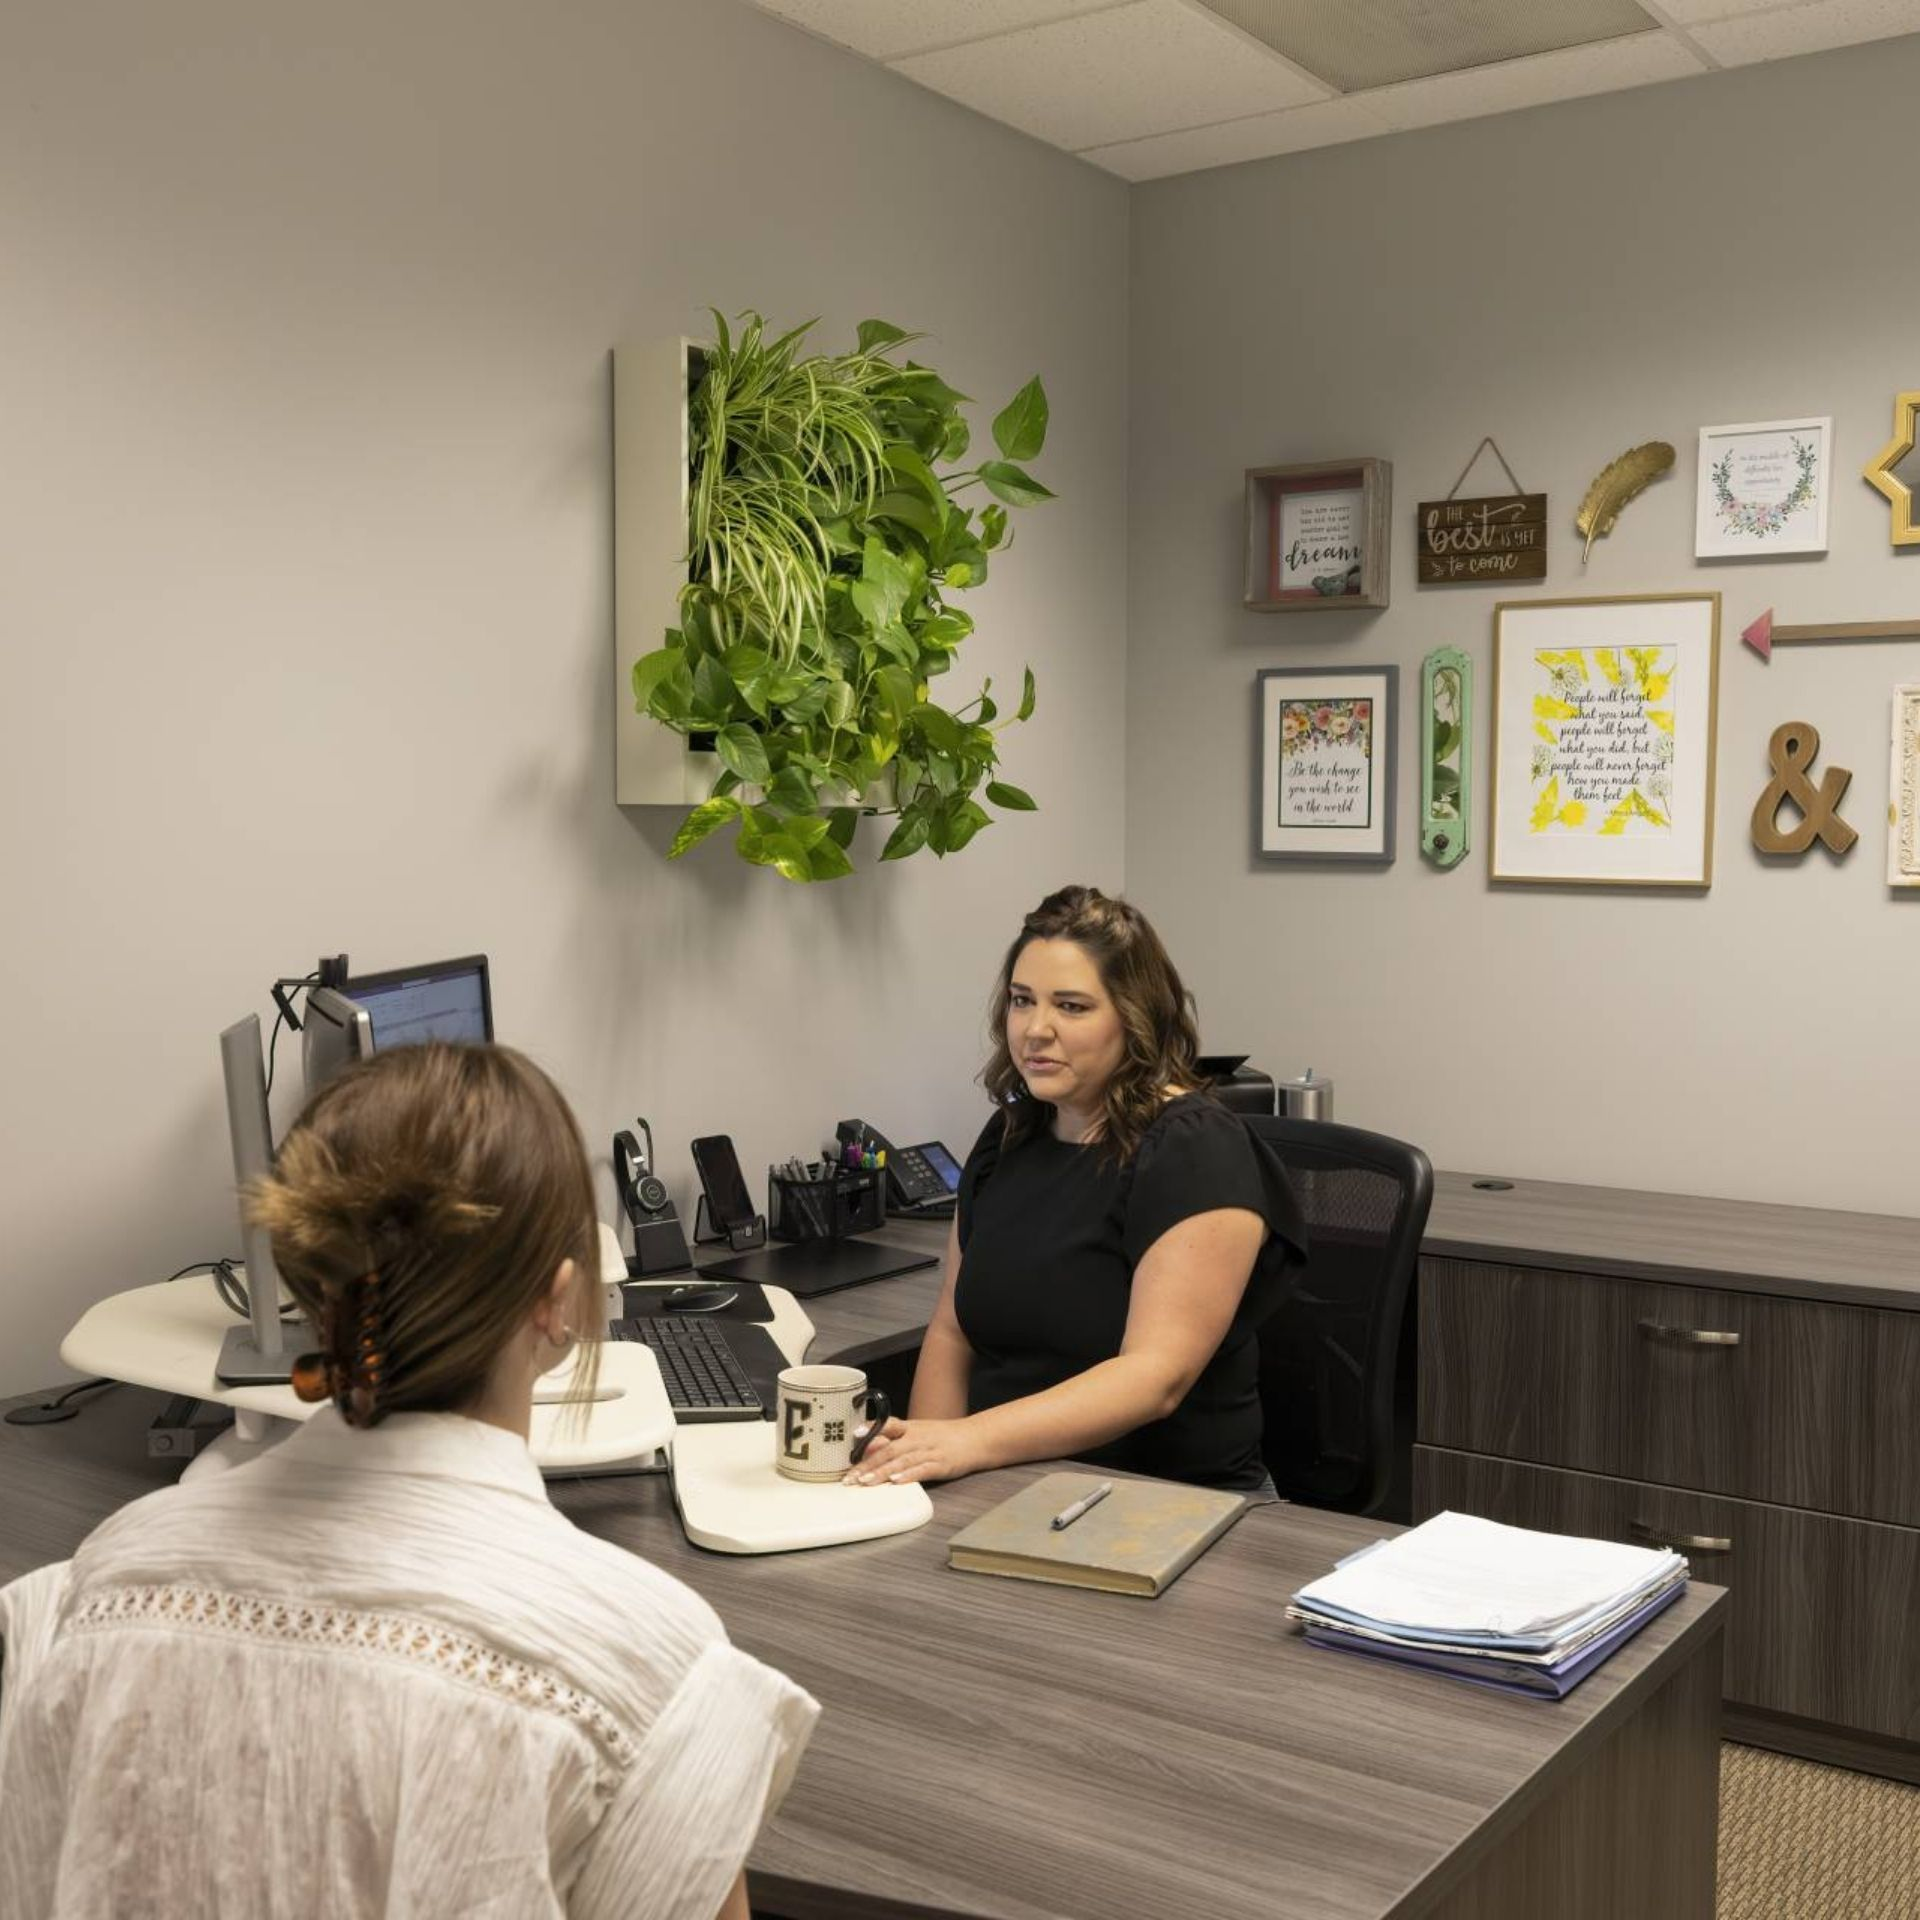 freedom series anywhere greenwall mounted in small corporate office